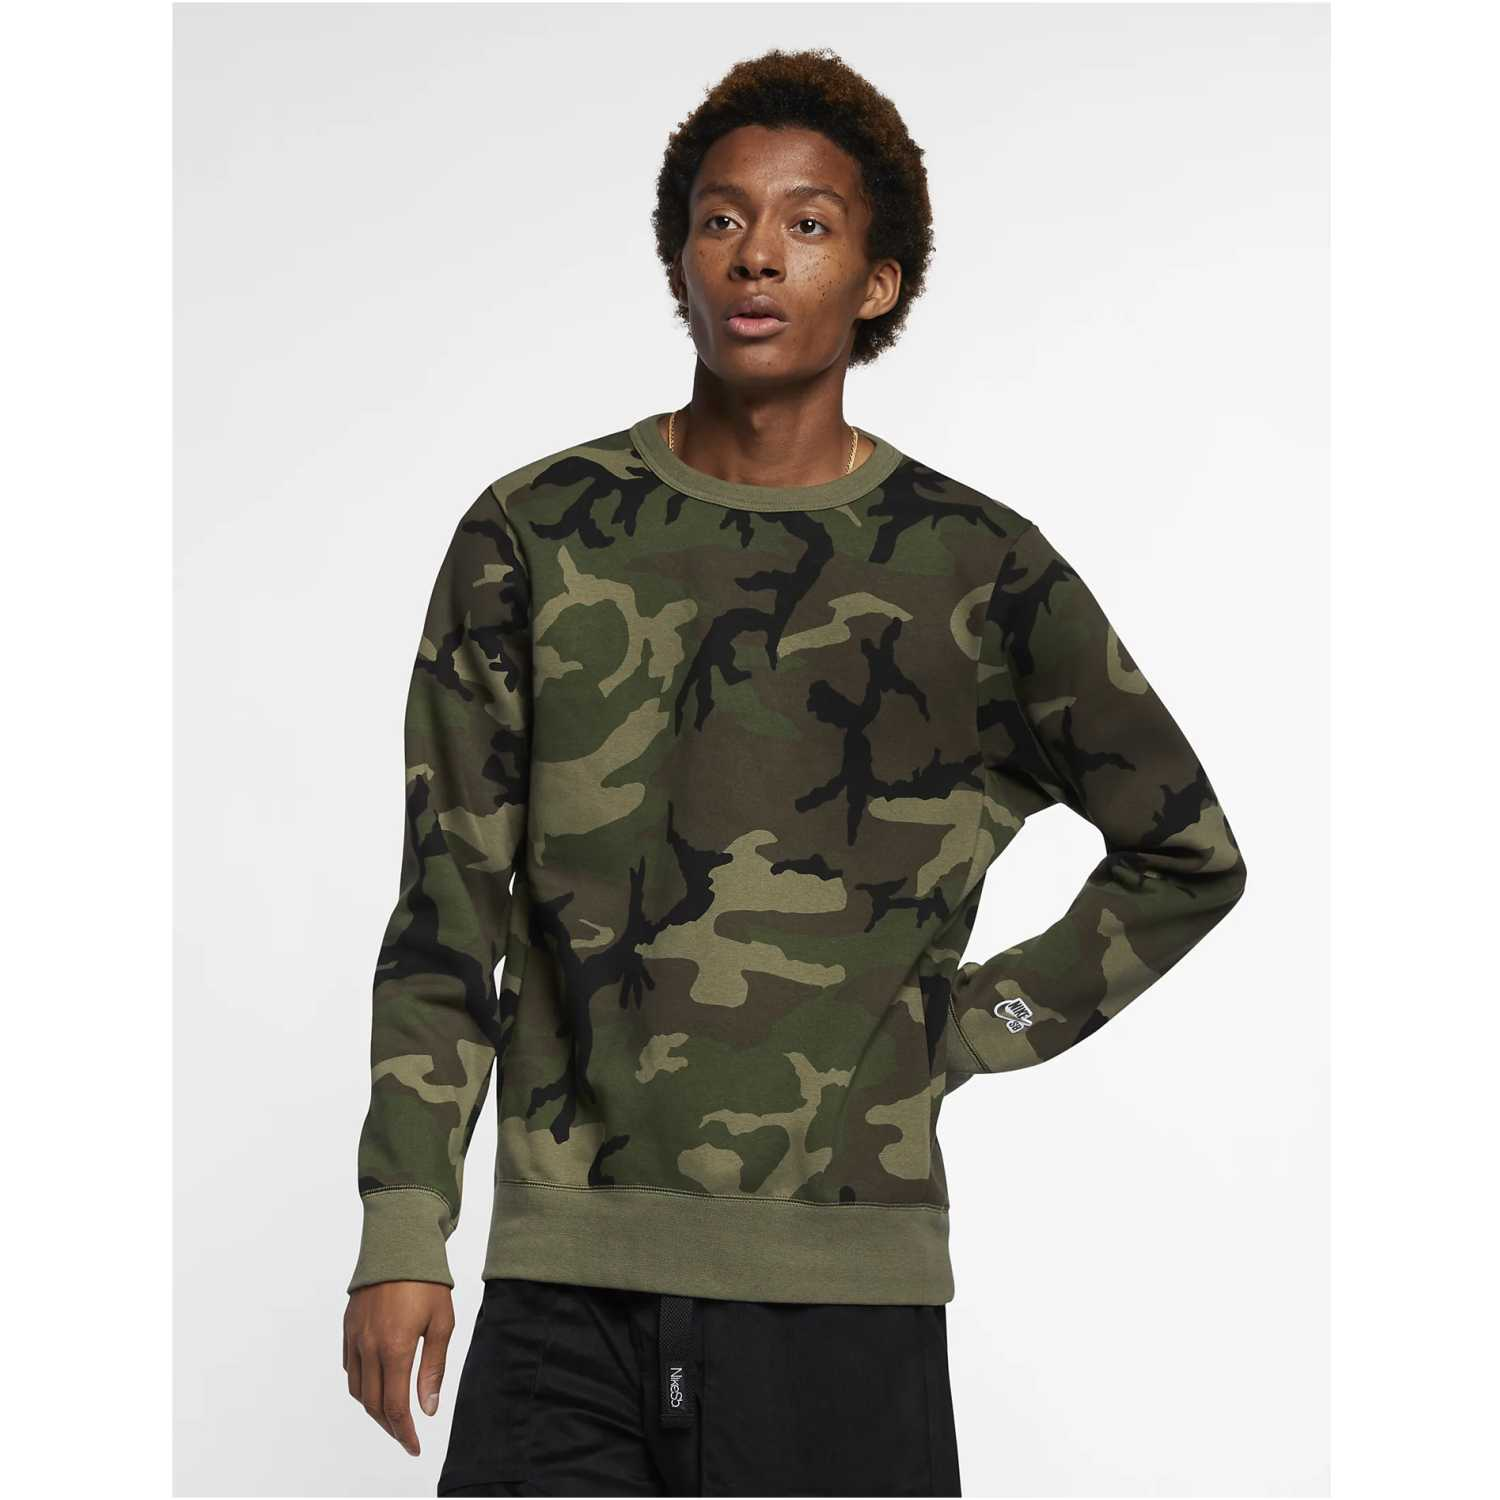 Nike m nk sb crew icon erdl Camuflado Hoodies y Sweaters Fashion